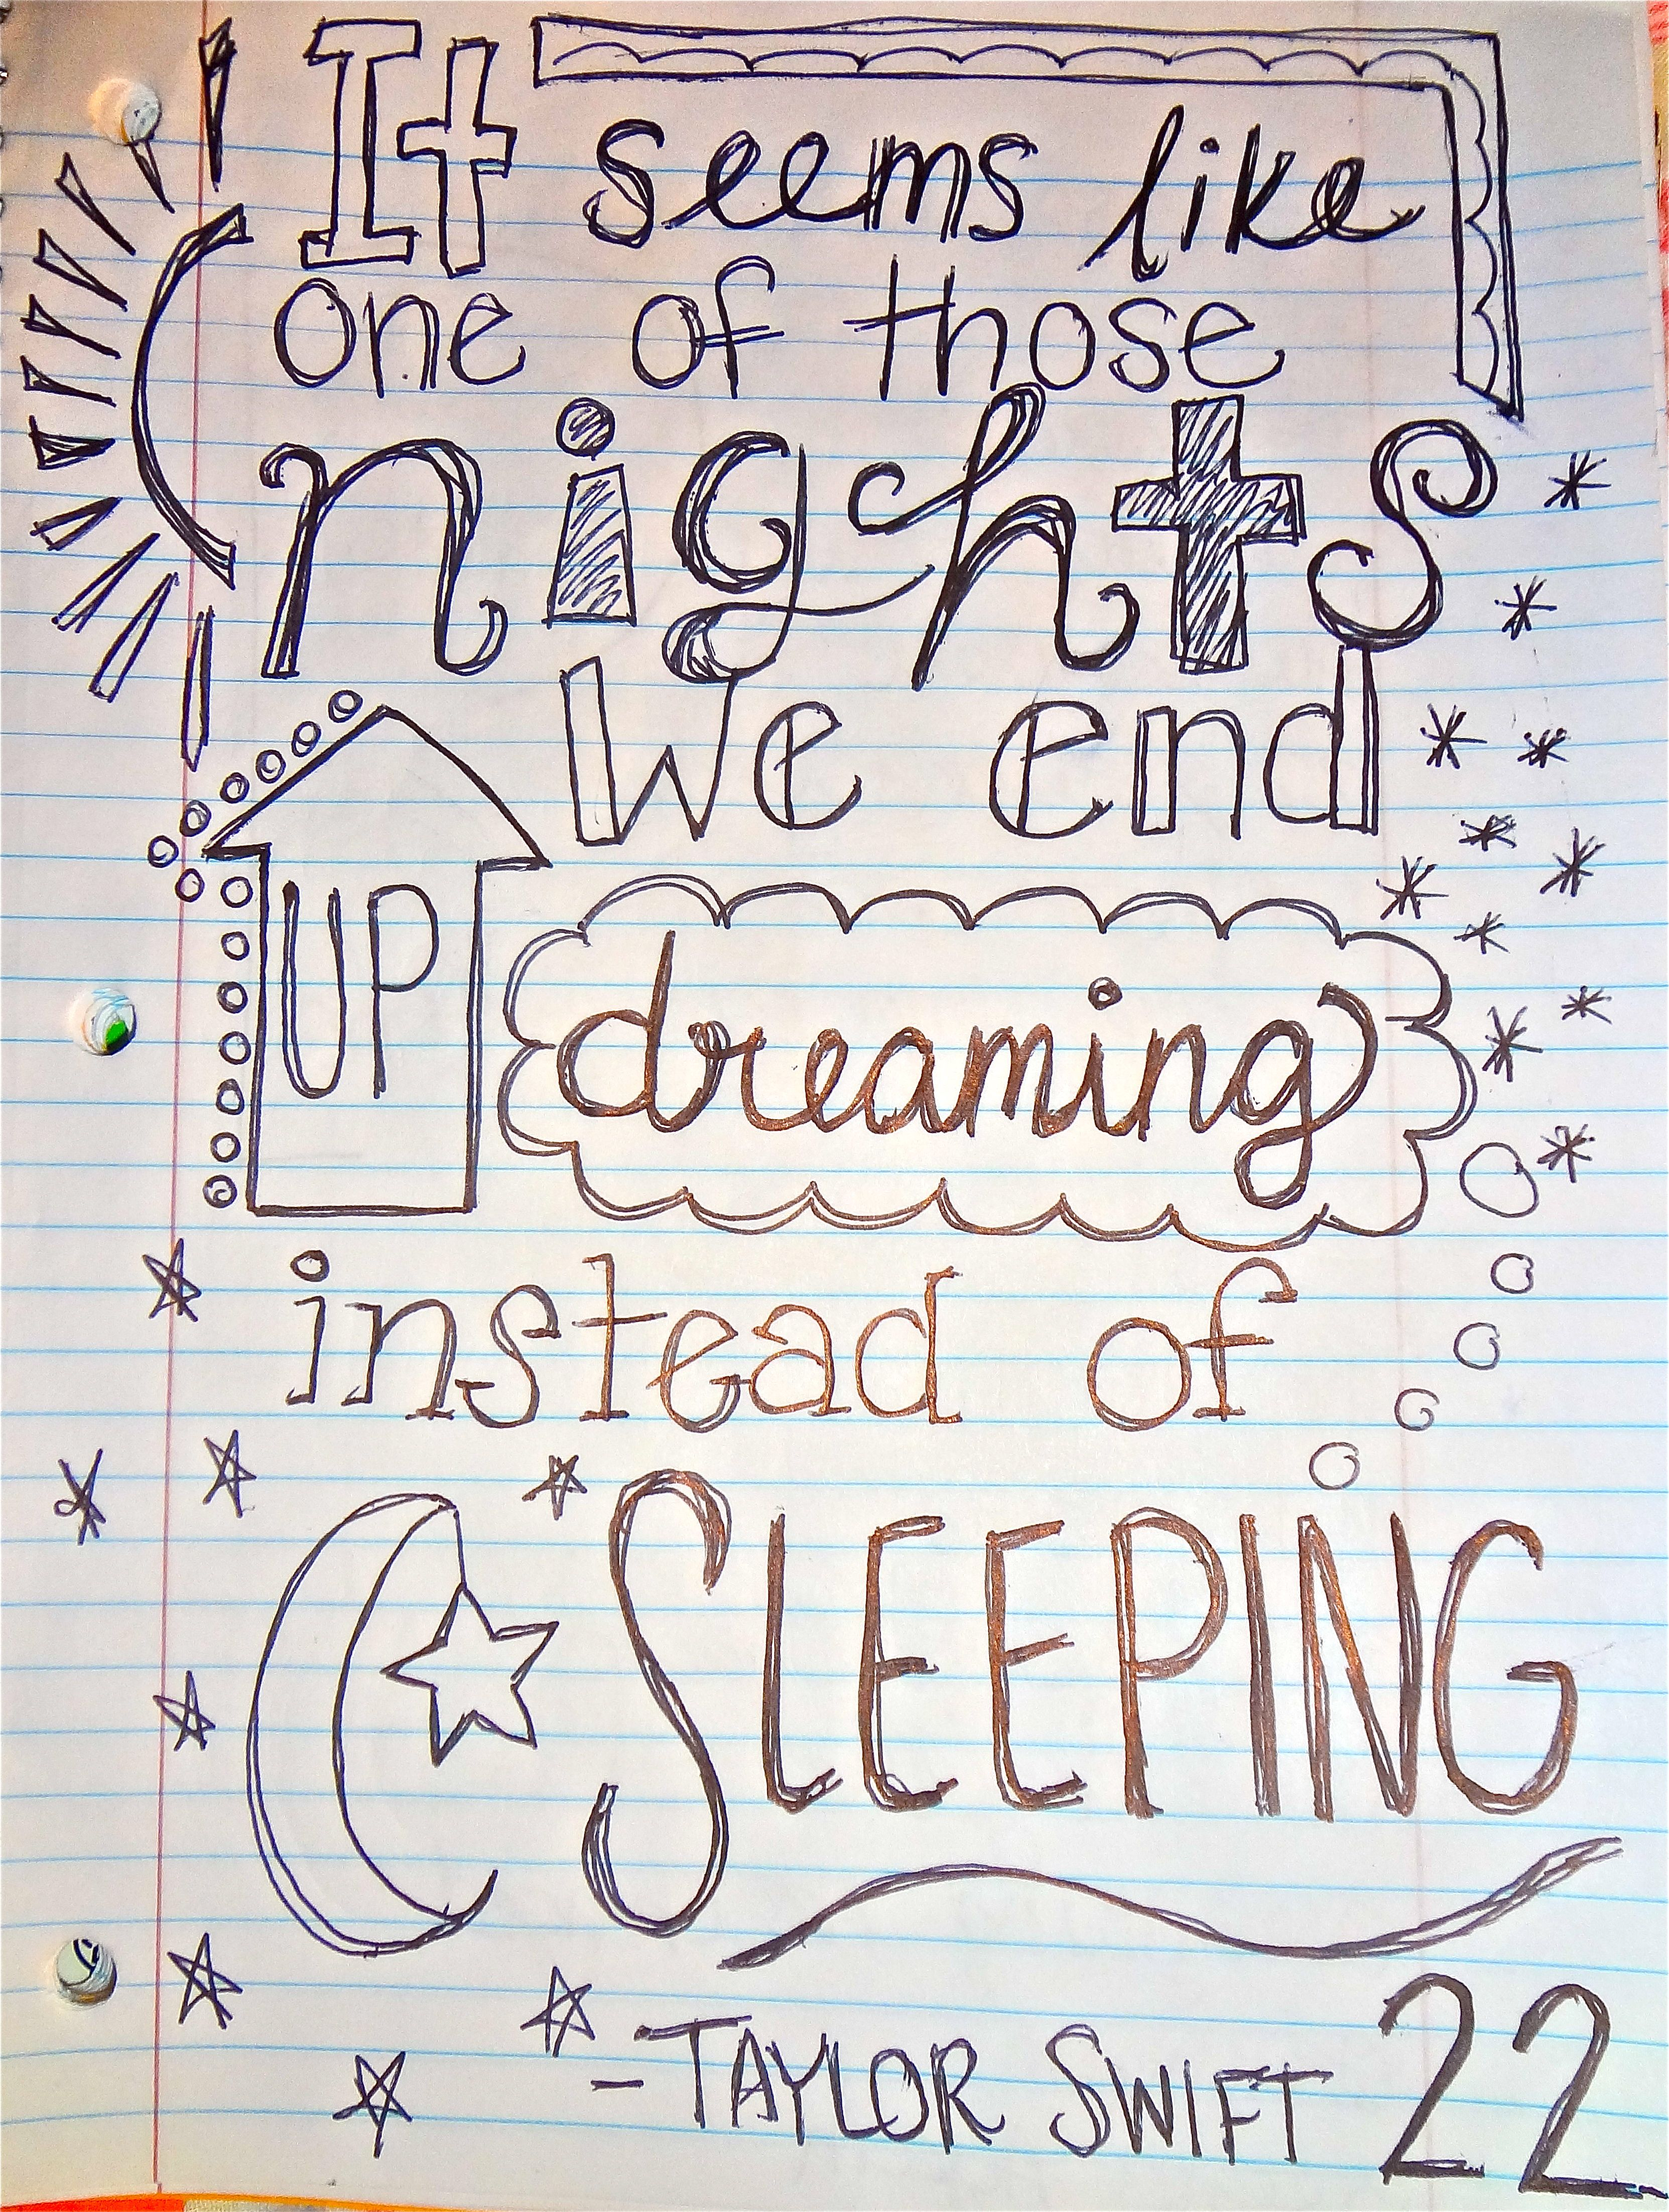 Pin By Megan Scapin On Fangirl Lyric Drawings Drawing Quotes Song Lyrics Art